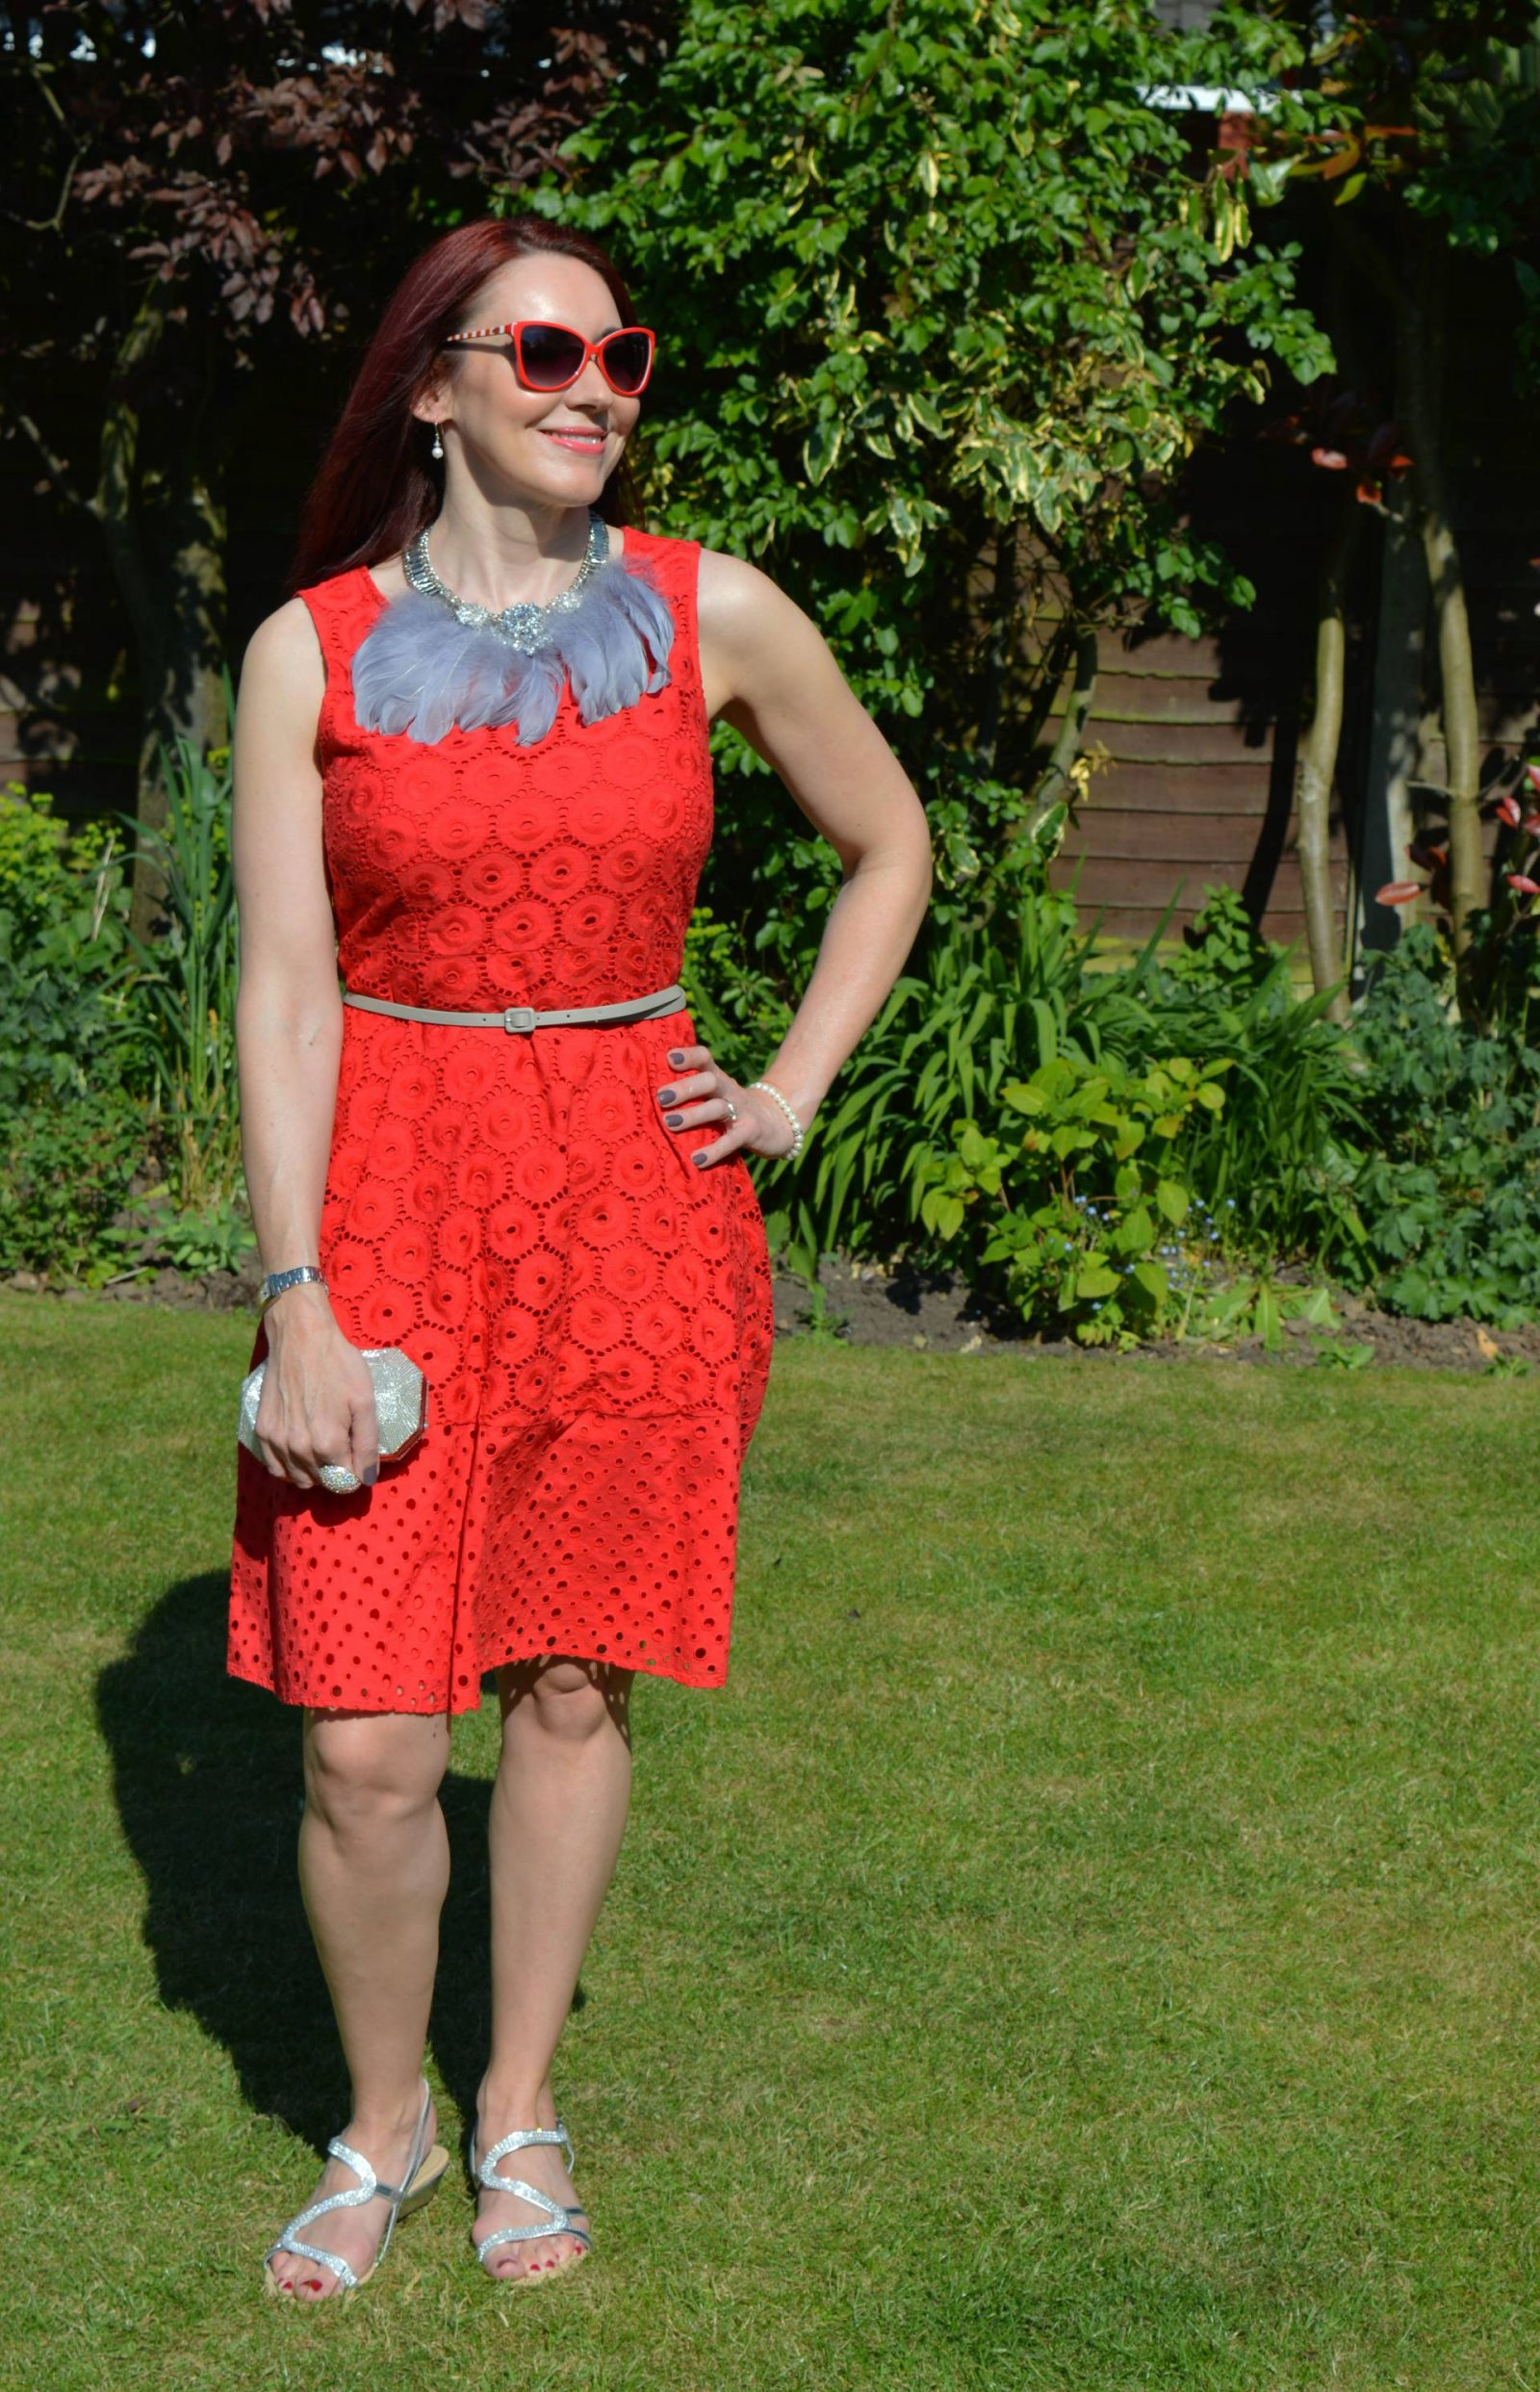 Bonmarché Red Dress Styled Two Ways Bonmarche diamante sandals feather bib necklace